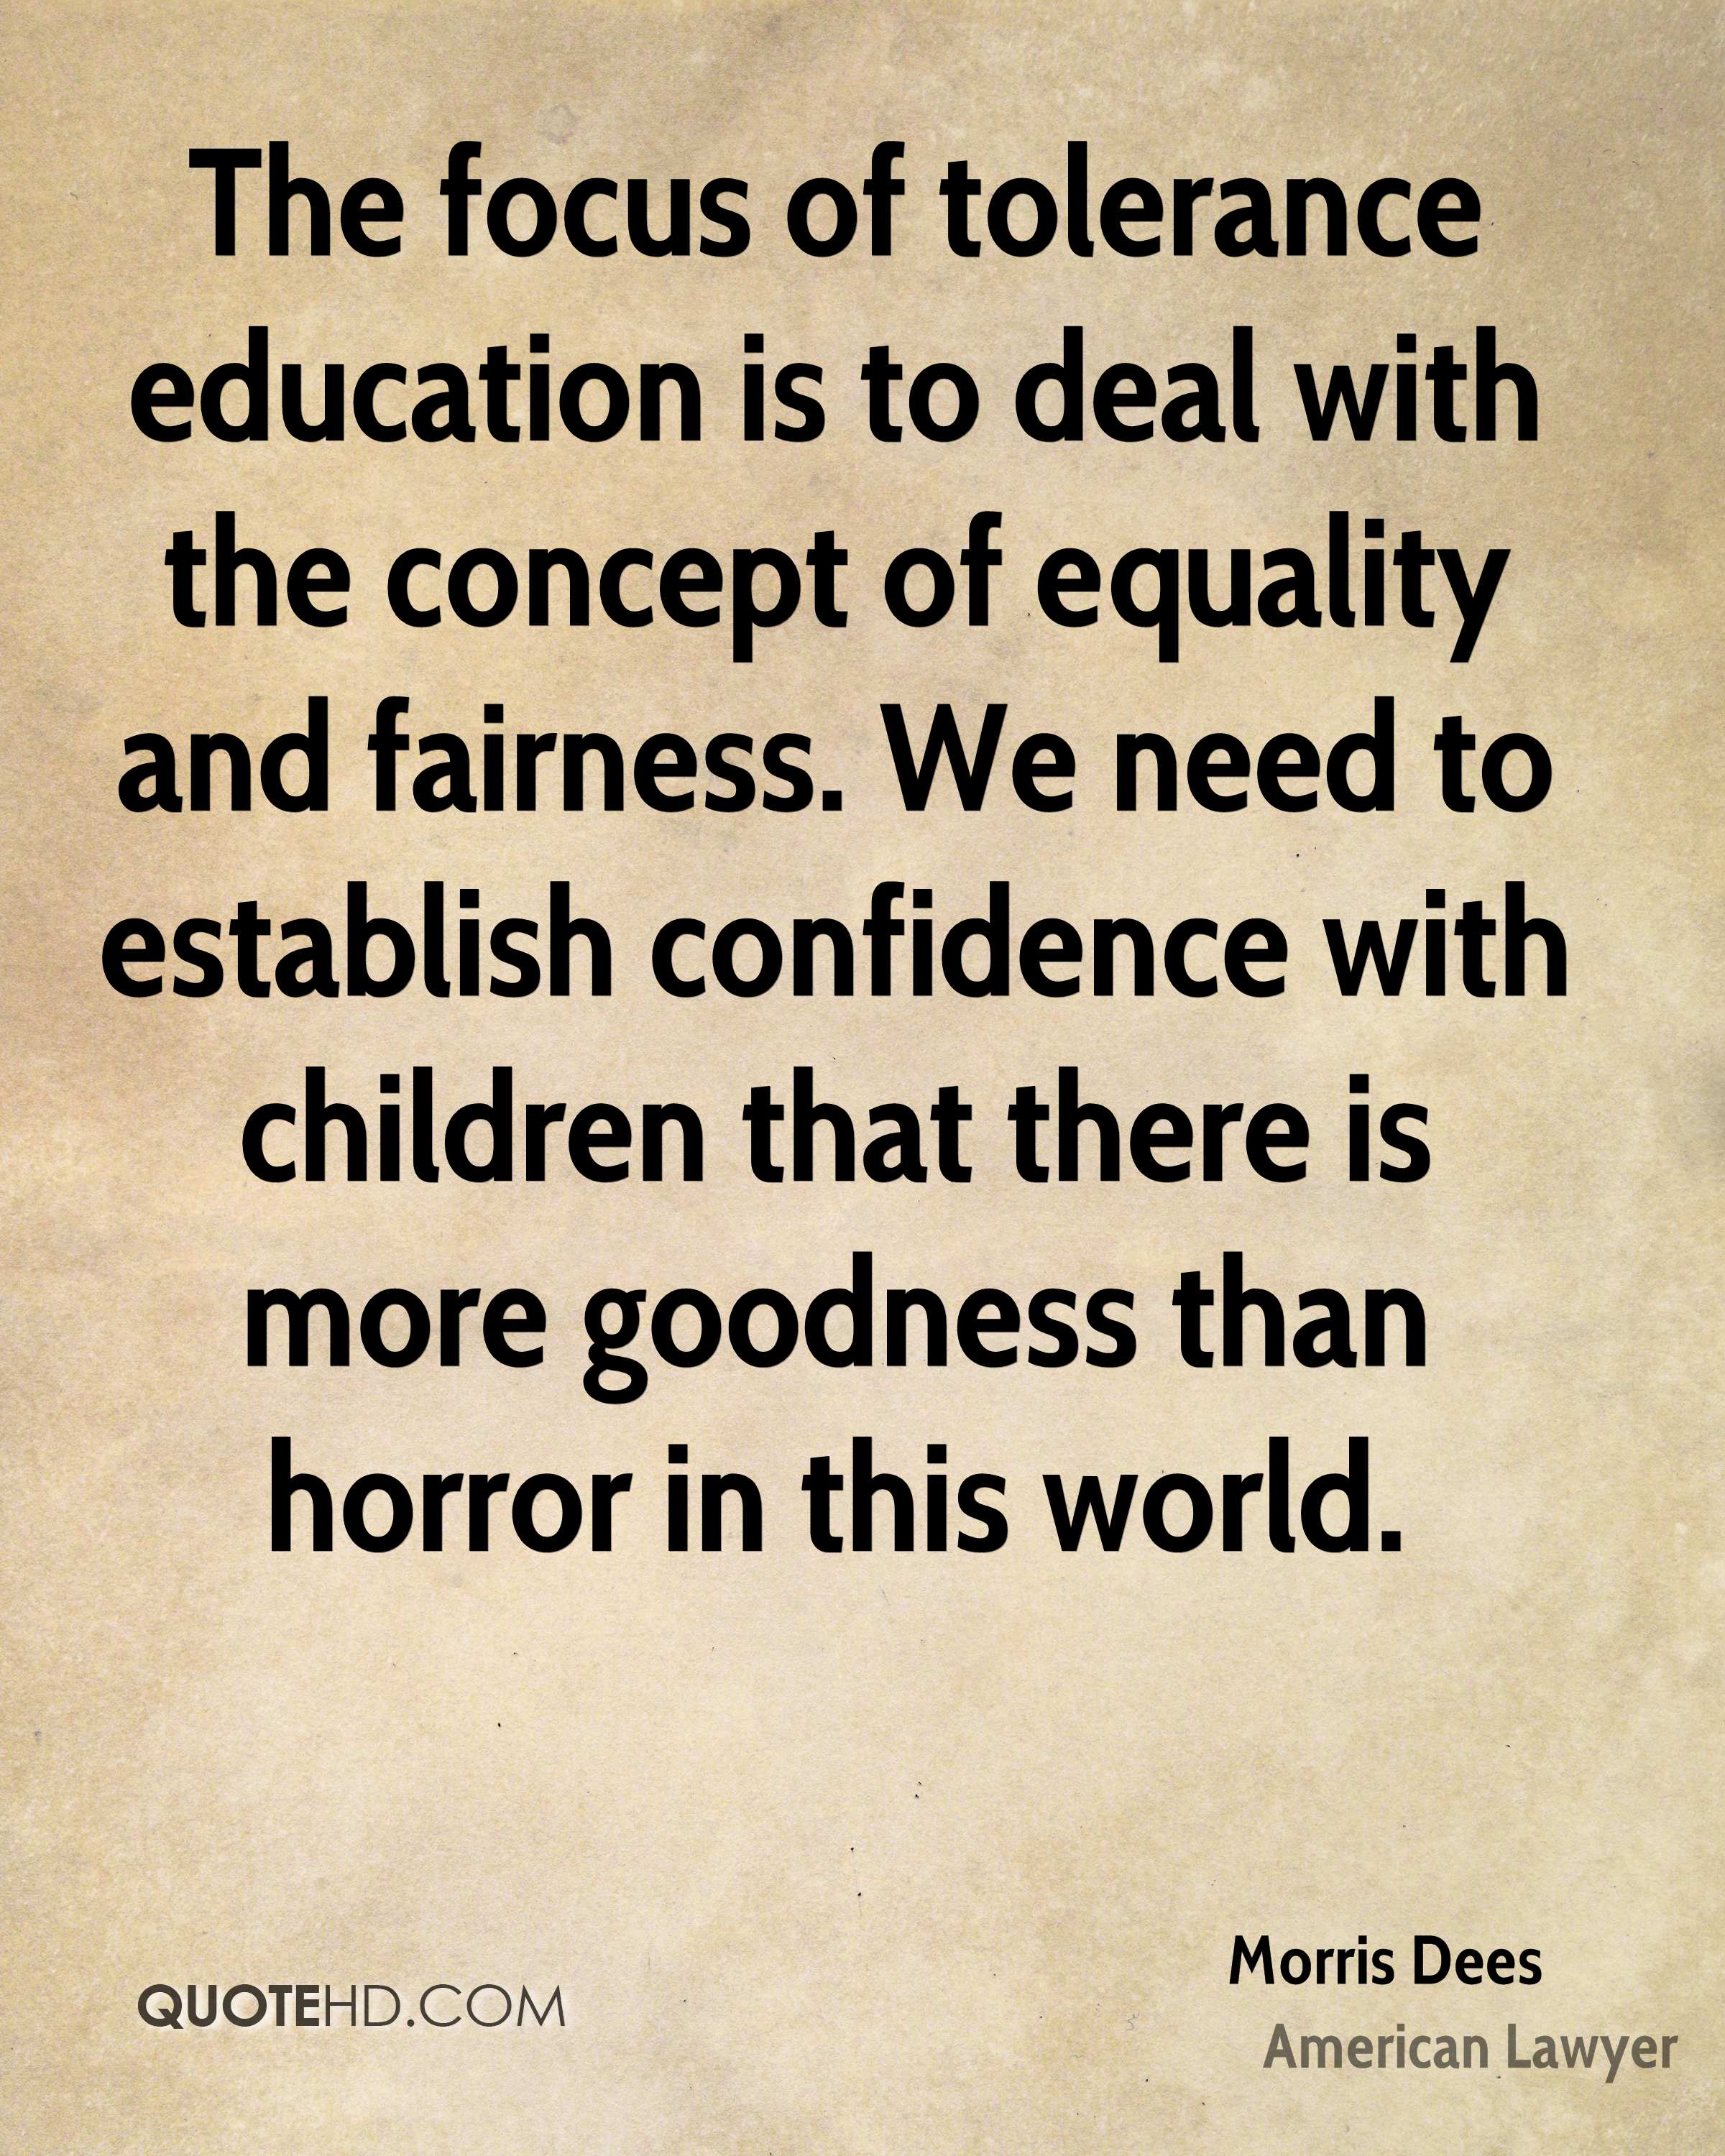 The focus of tolerance education is to deal with the concept of equality and fairness. We need to establish confidence with children that there is more goodness than horror in this world.